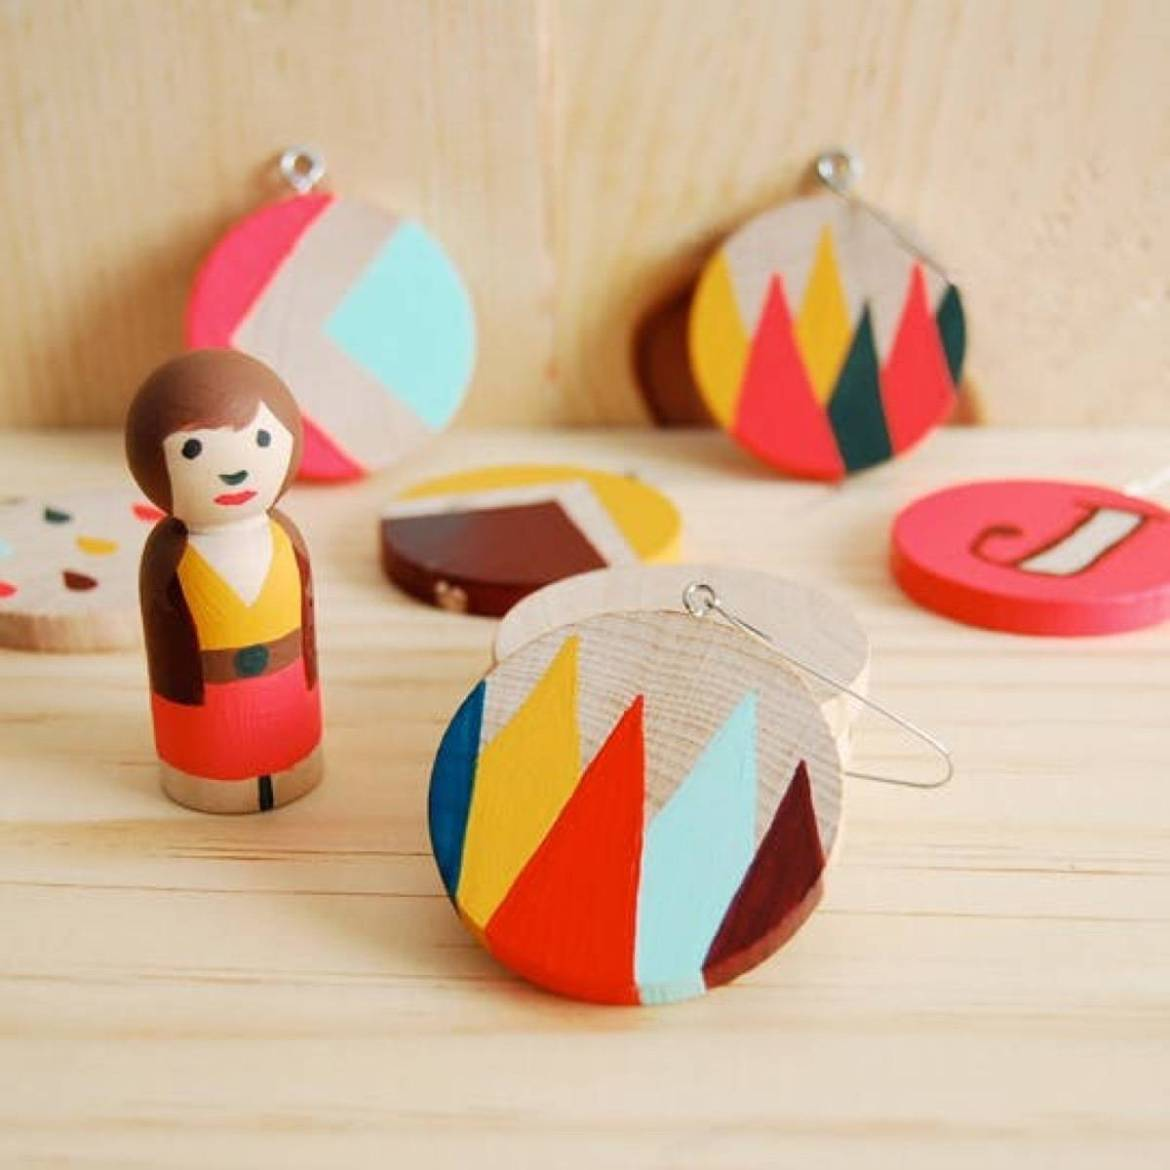 Quick and cute wood painted ornaments